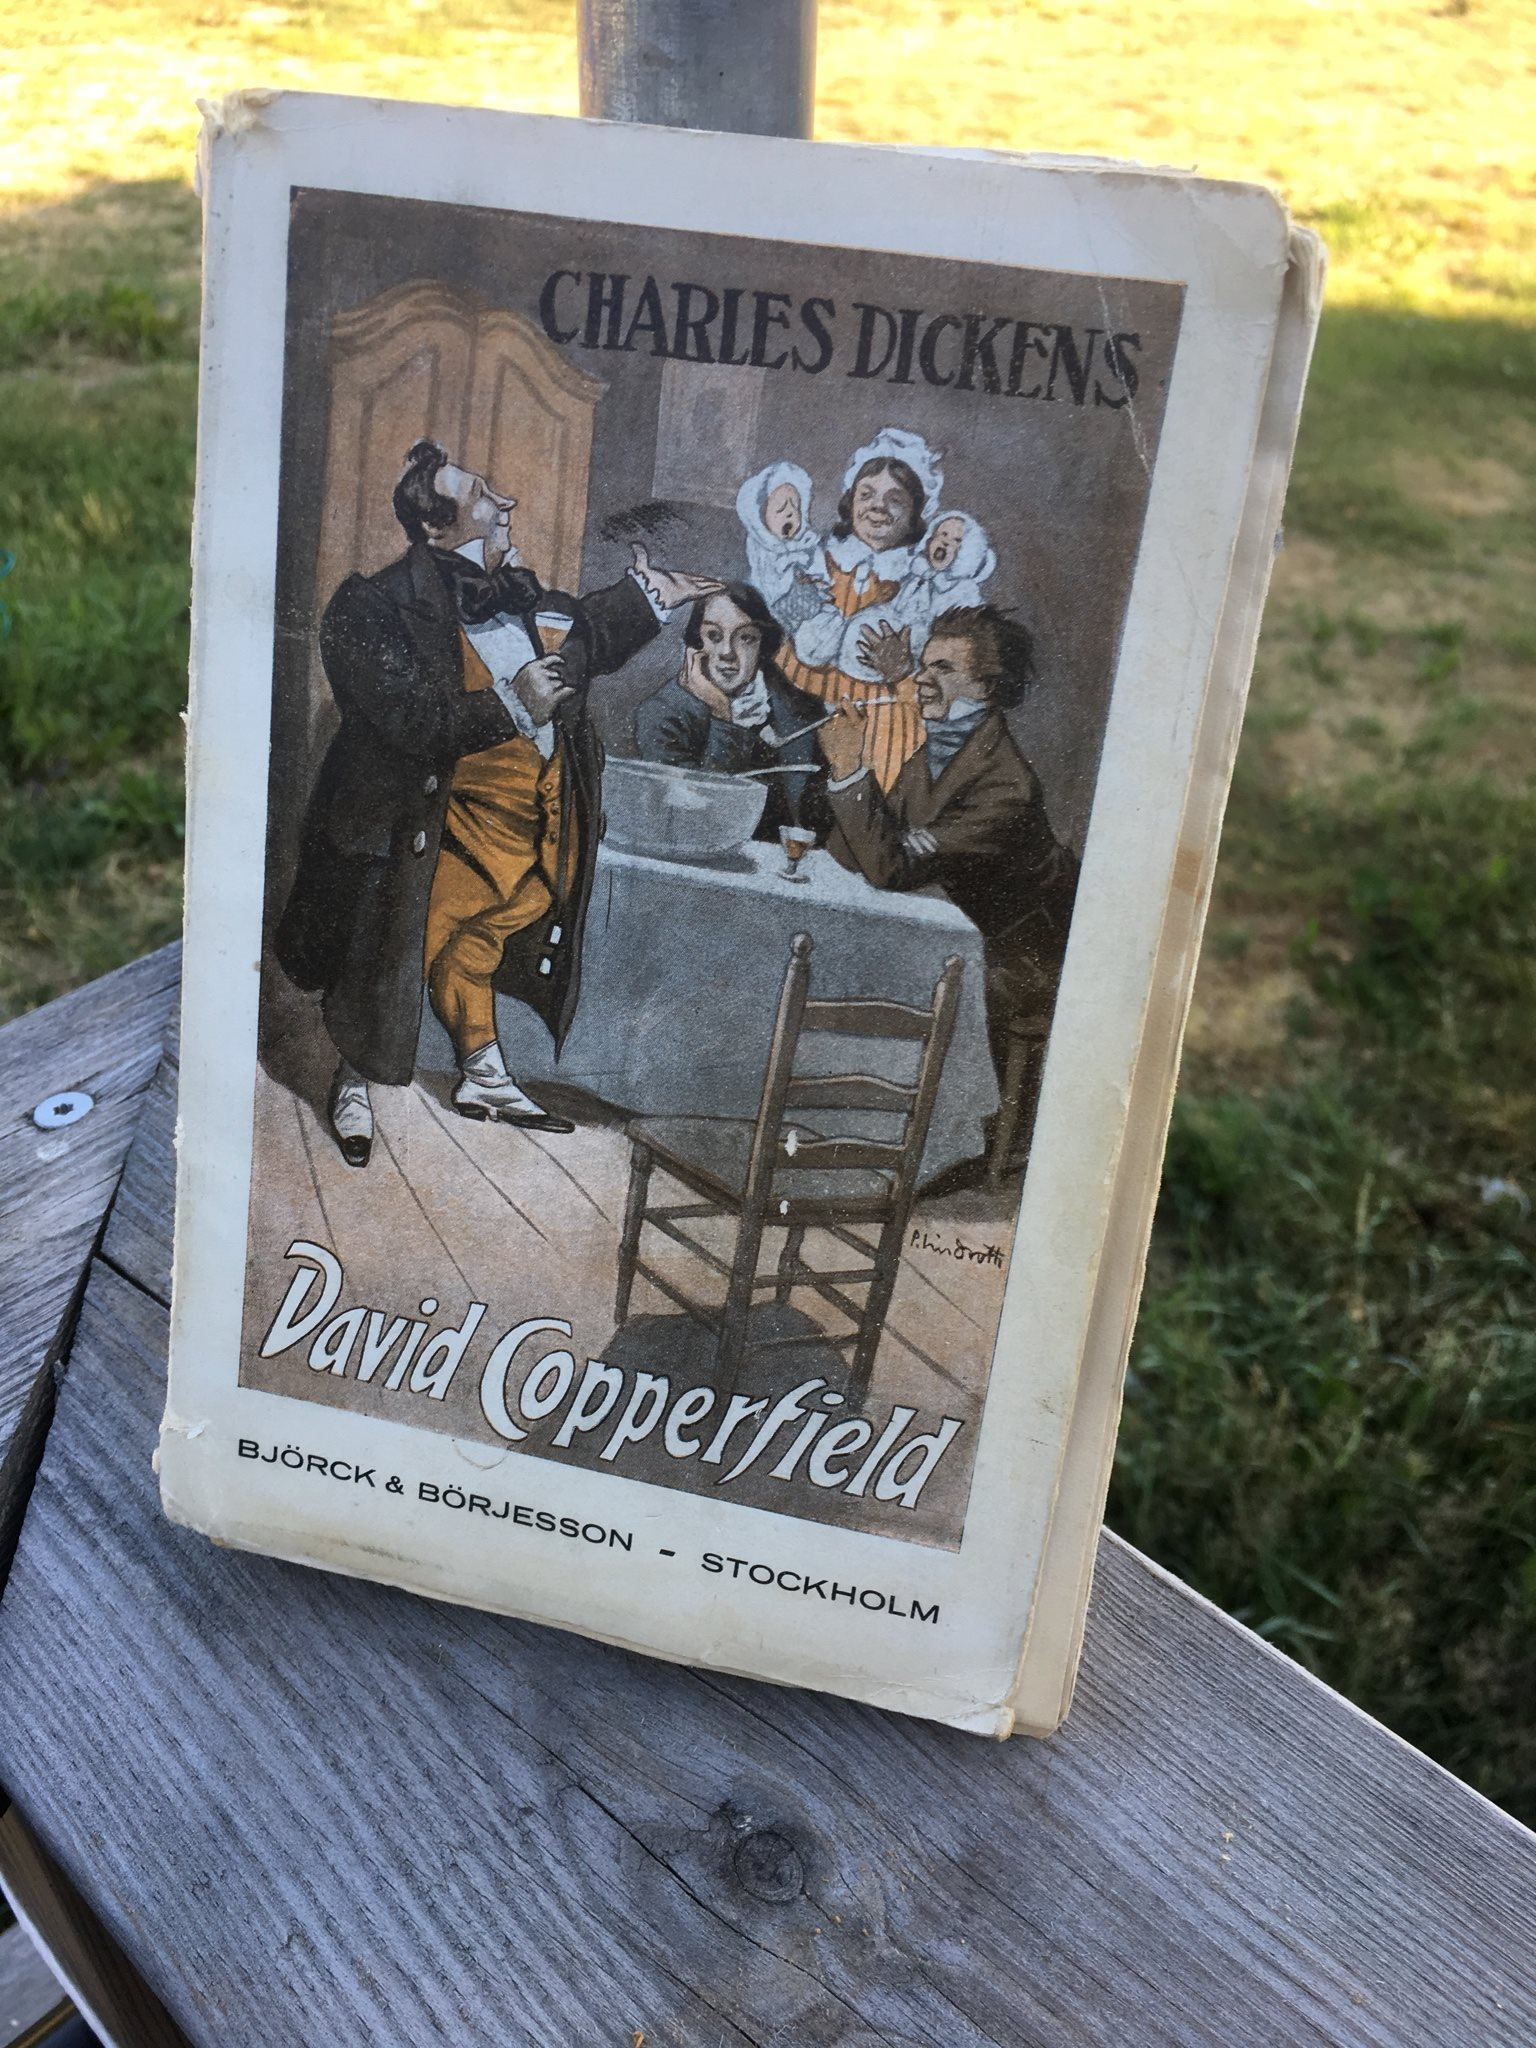 David Copperfield- Charles Dickens- bok- litteratur